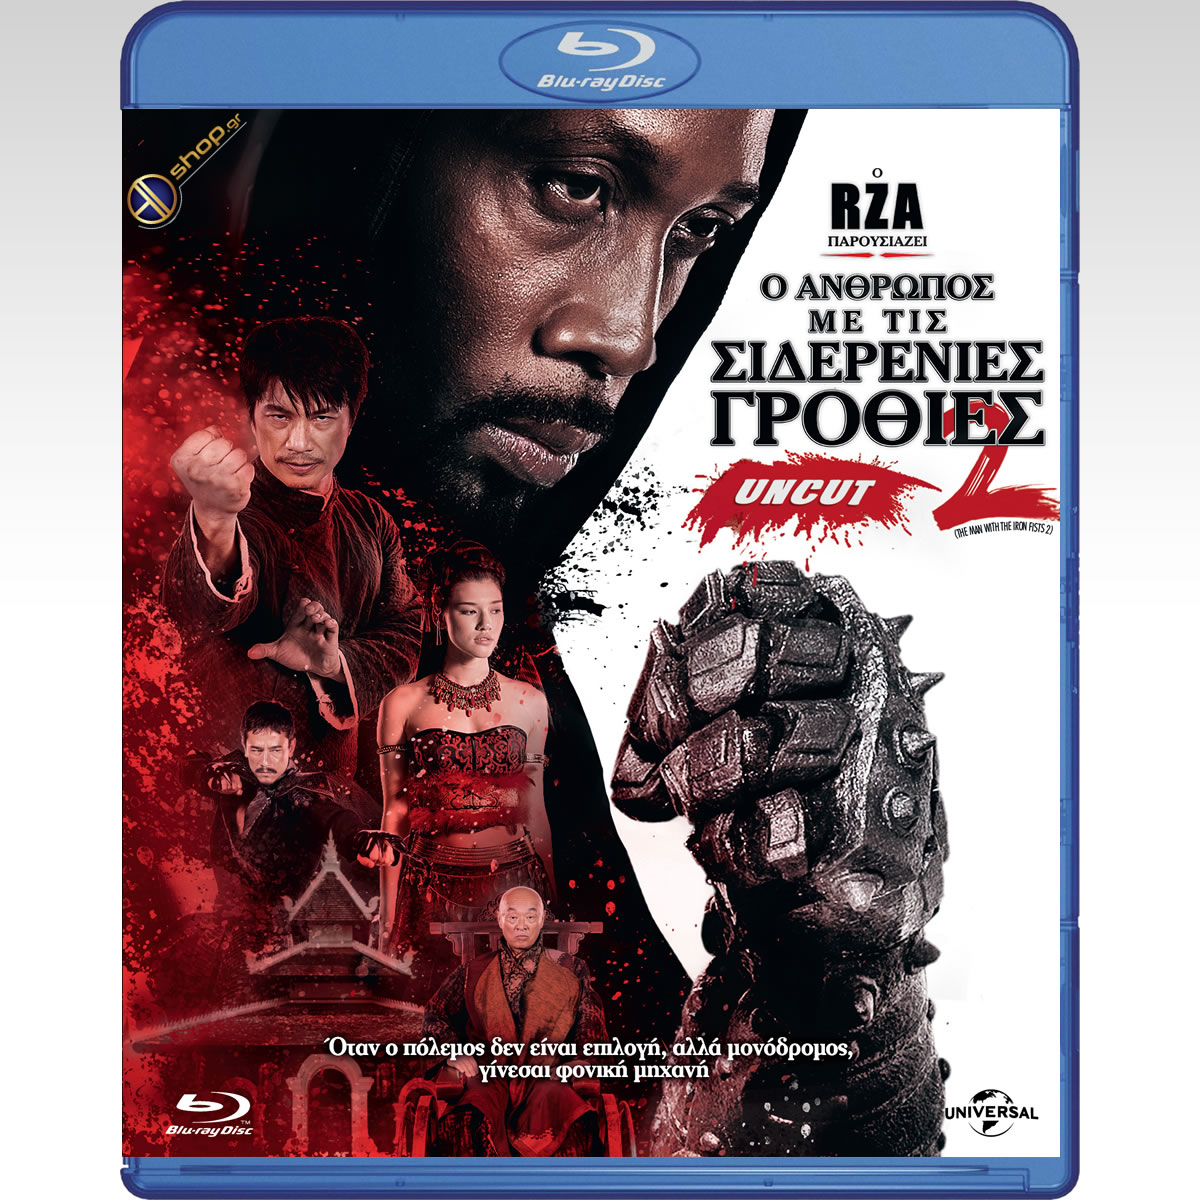 THE MAN WITH THE IRON FISTS 2 Uncut - O �������� �� ��� ���������� ������� 2 Uncut (BLU-RAY)